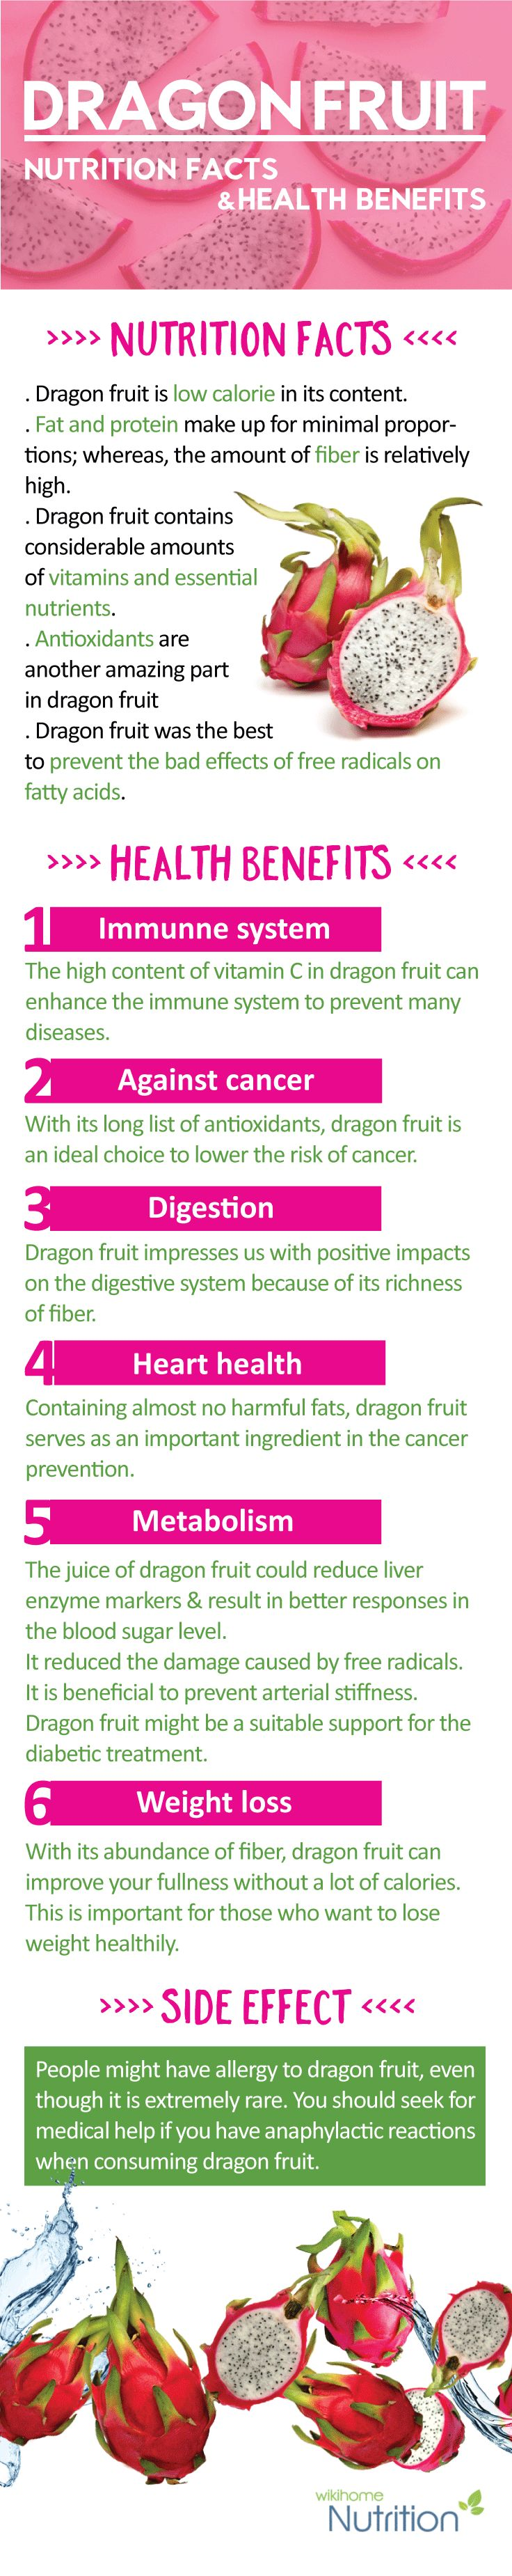 Dragon fruit is an extremely beautiful fruit that has dazzling flowers and an intense shape and color.